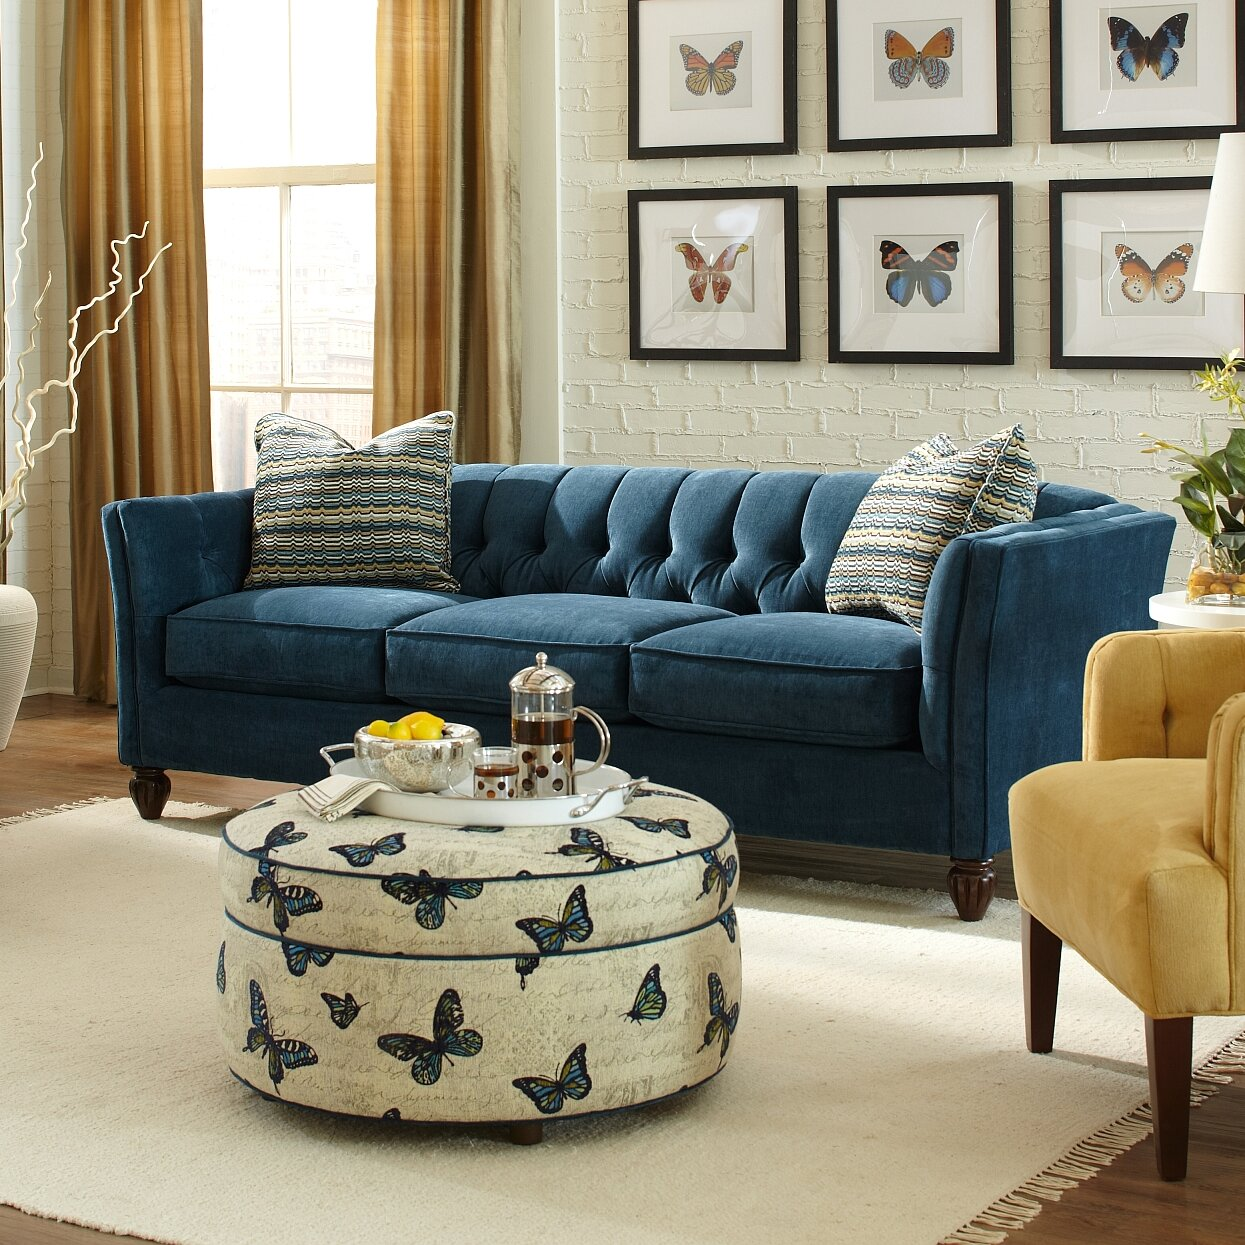 Find helpful customer reviews and review ratings for Wayfair - Furniture & Décor at 3aaa.ml Read honest and unbiased product reviews from our users.